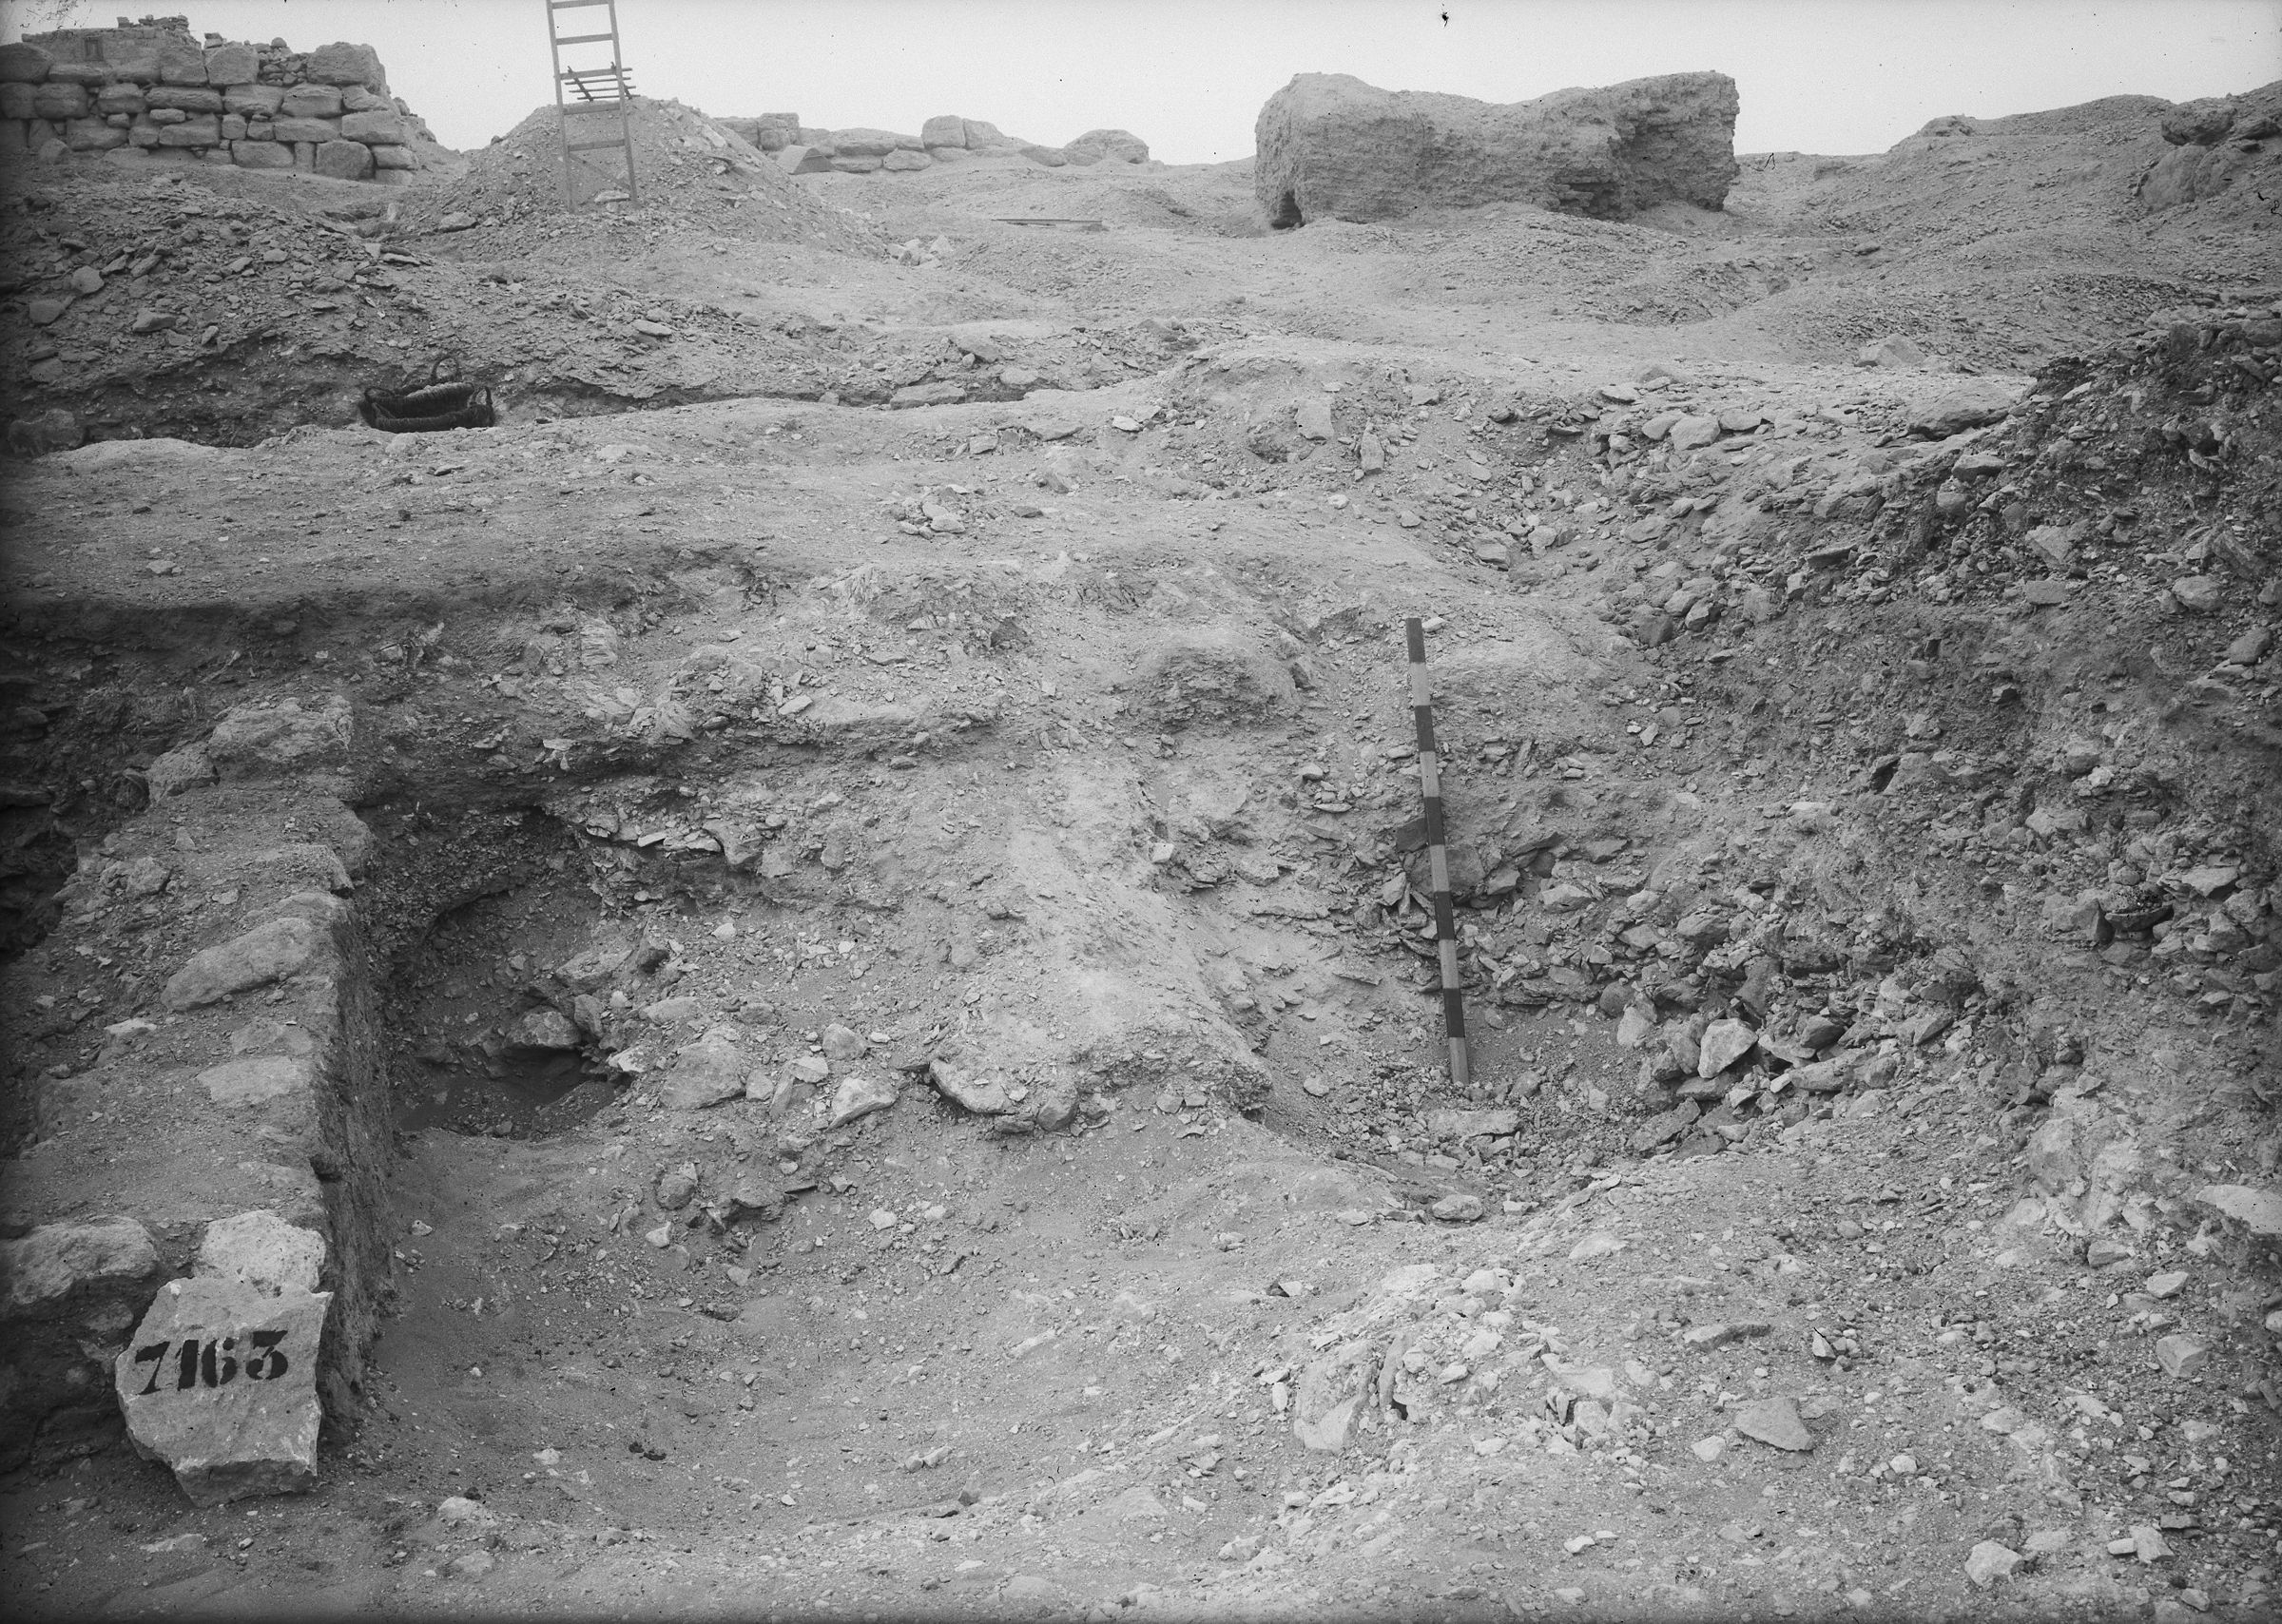 Eastern Cemetery: Site: Giza; View: G 7163